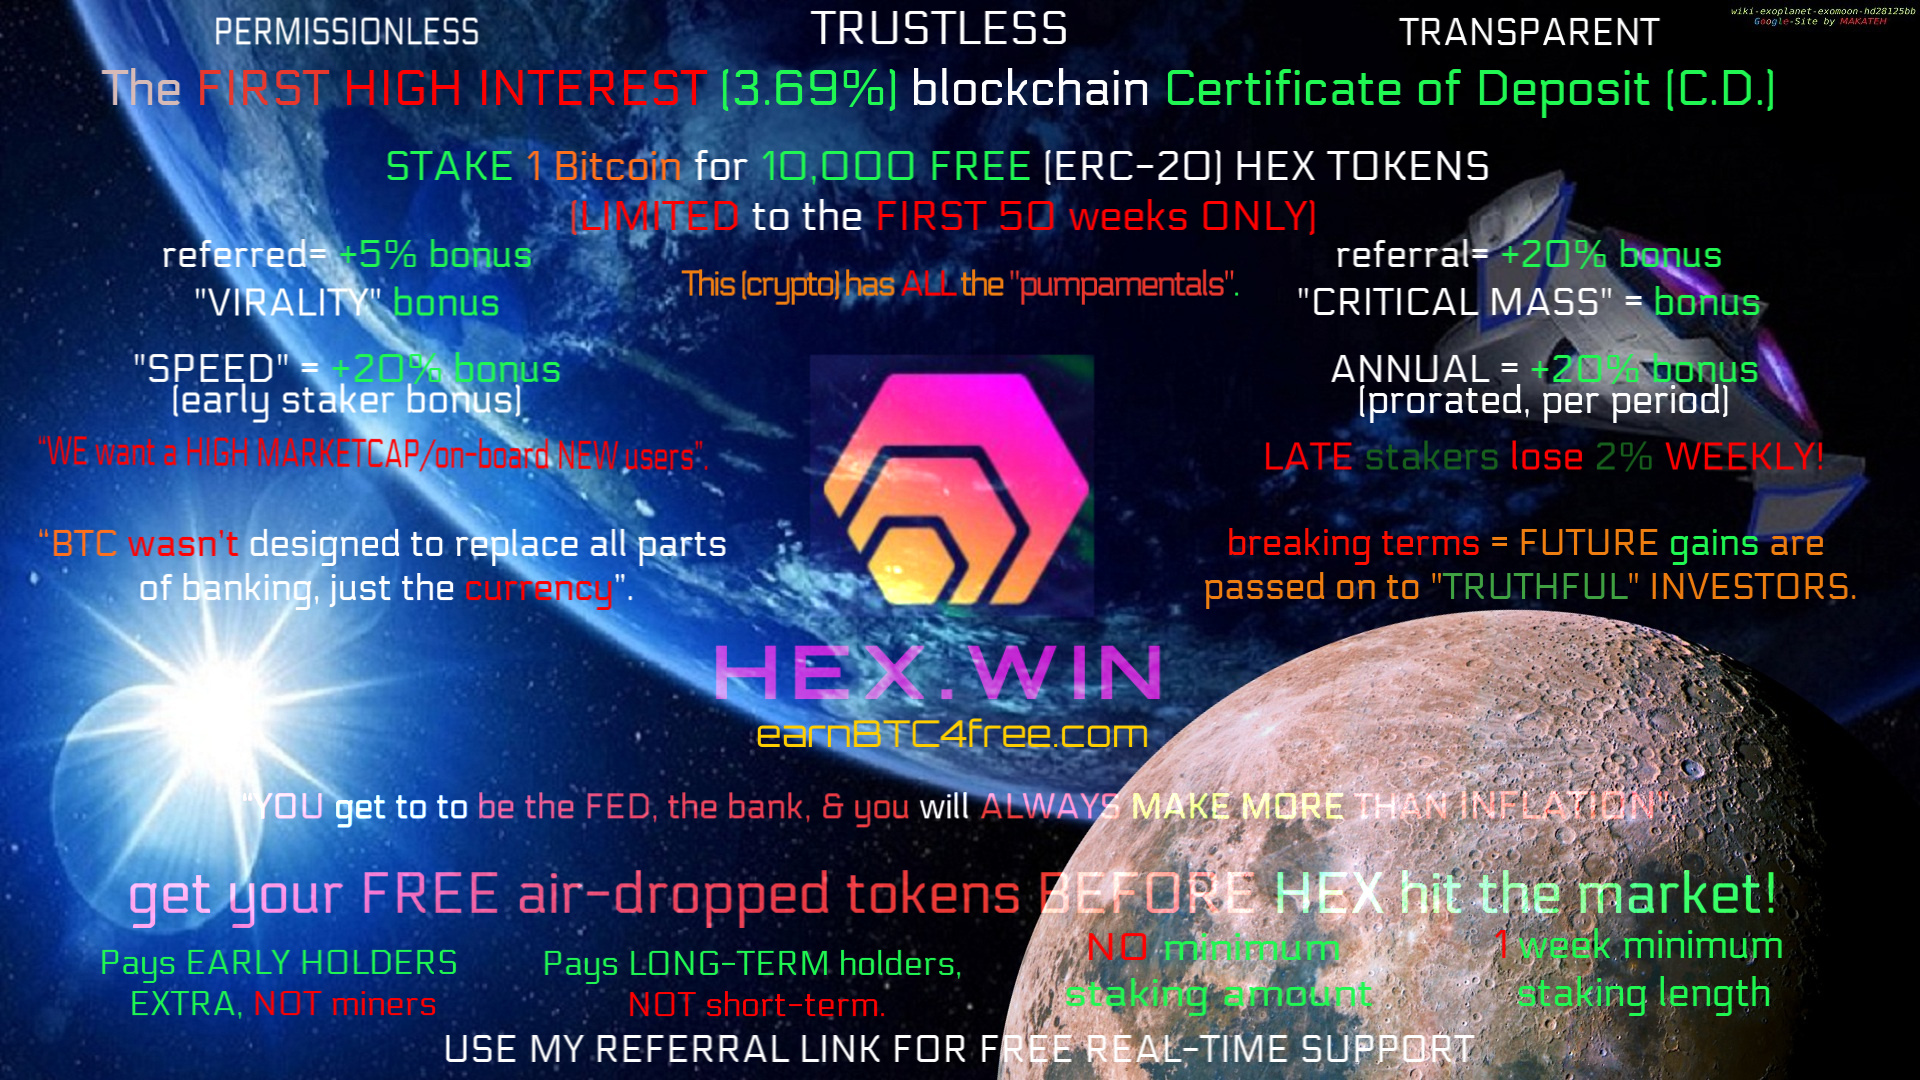 "https://www.earnbtc4free.com/promos-1/2019/4/16/free-hex-airdrop     The importance of consistency is highlighted below, ""loyalty bonuses"" add 1% to your previous streak, up to max 100% bonuses."